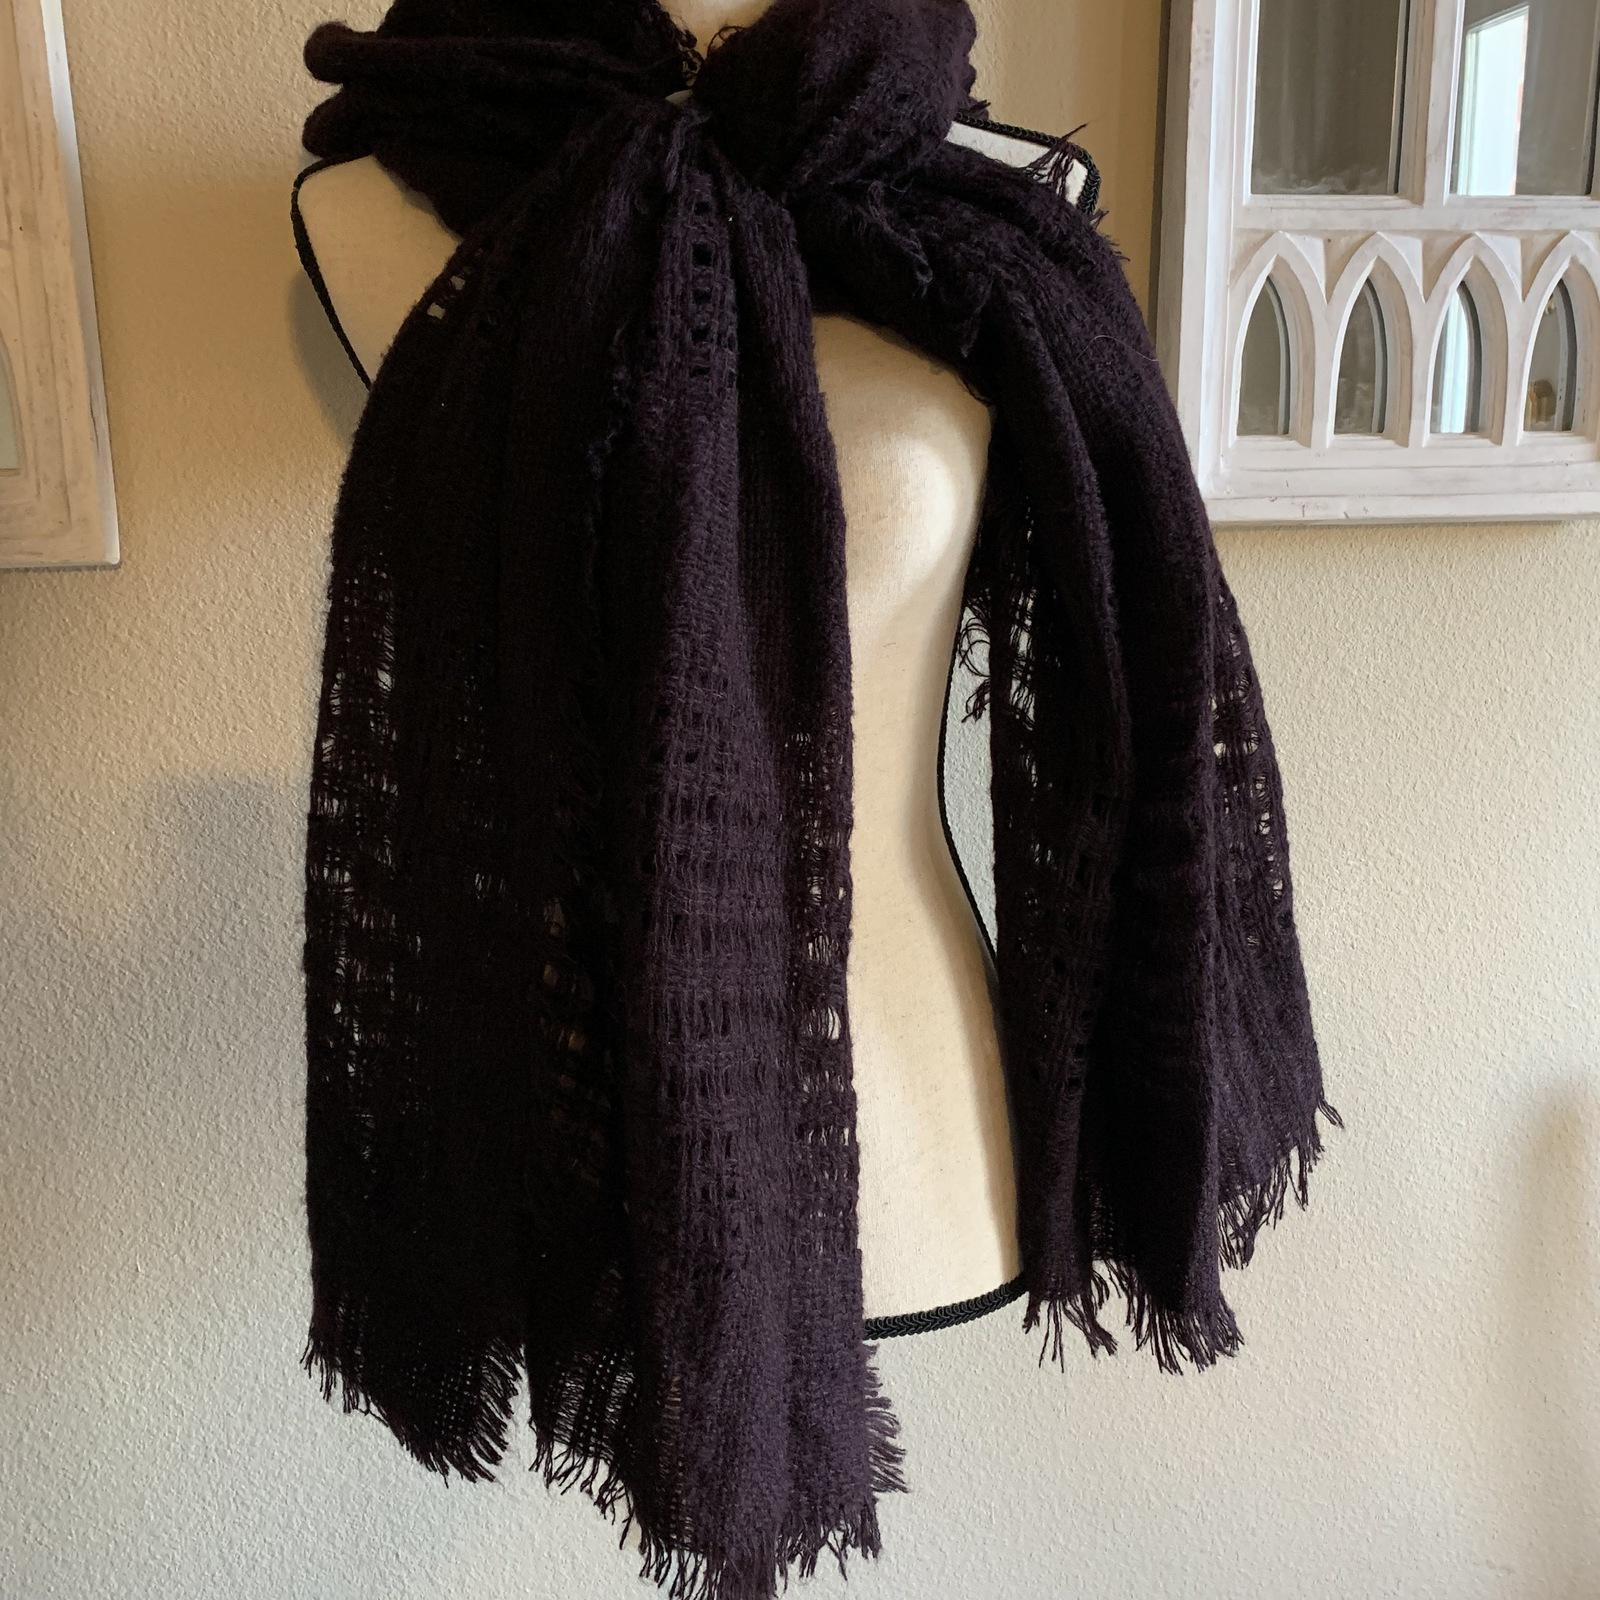 Primary image for Oblong Scarf Wrap 70L x 33W